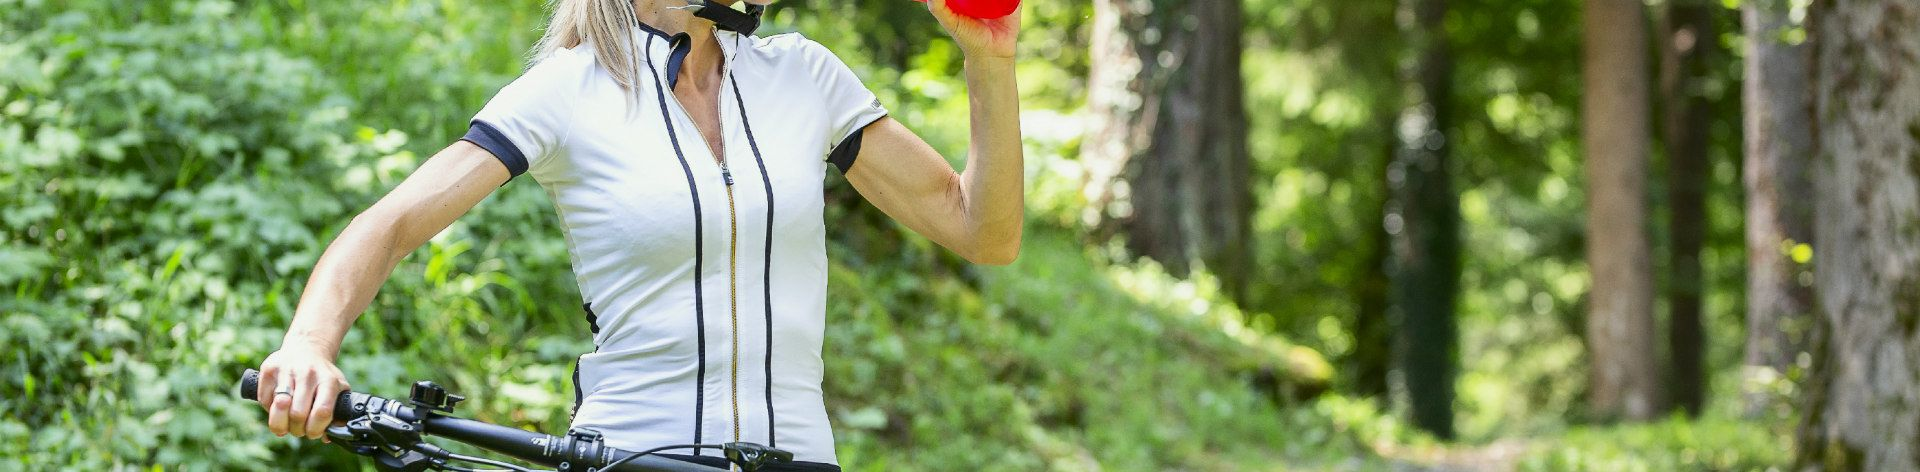 Van Eyck Sport cycling shirts outlet women